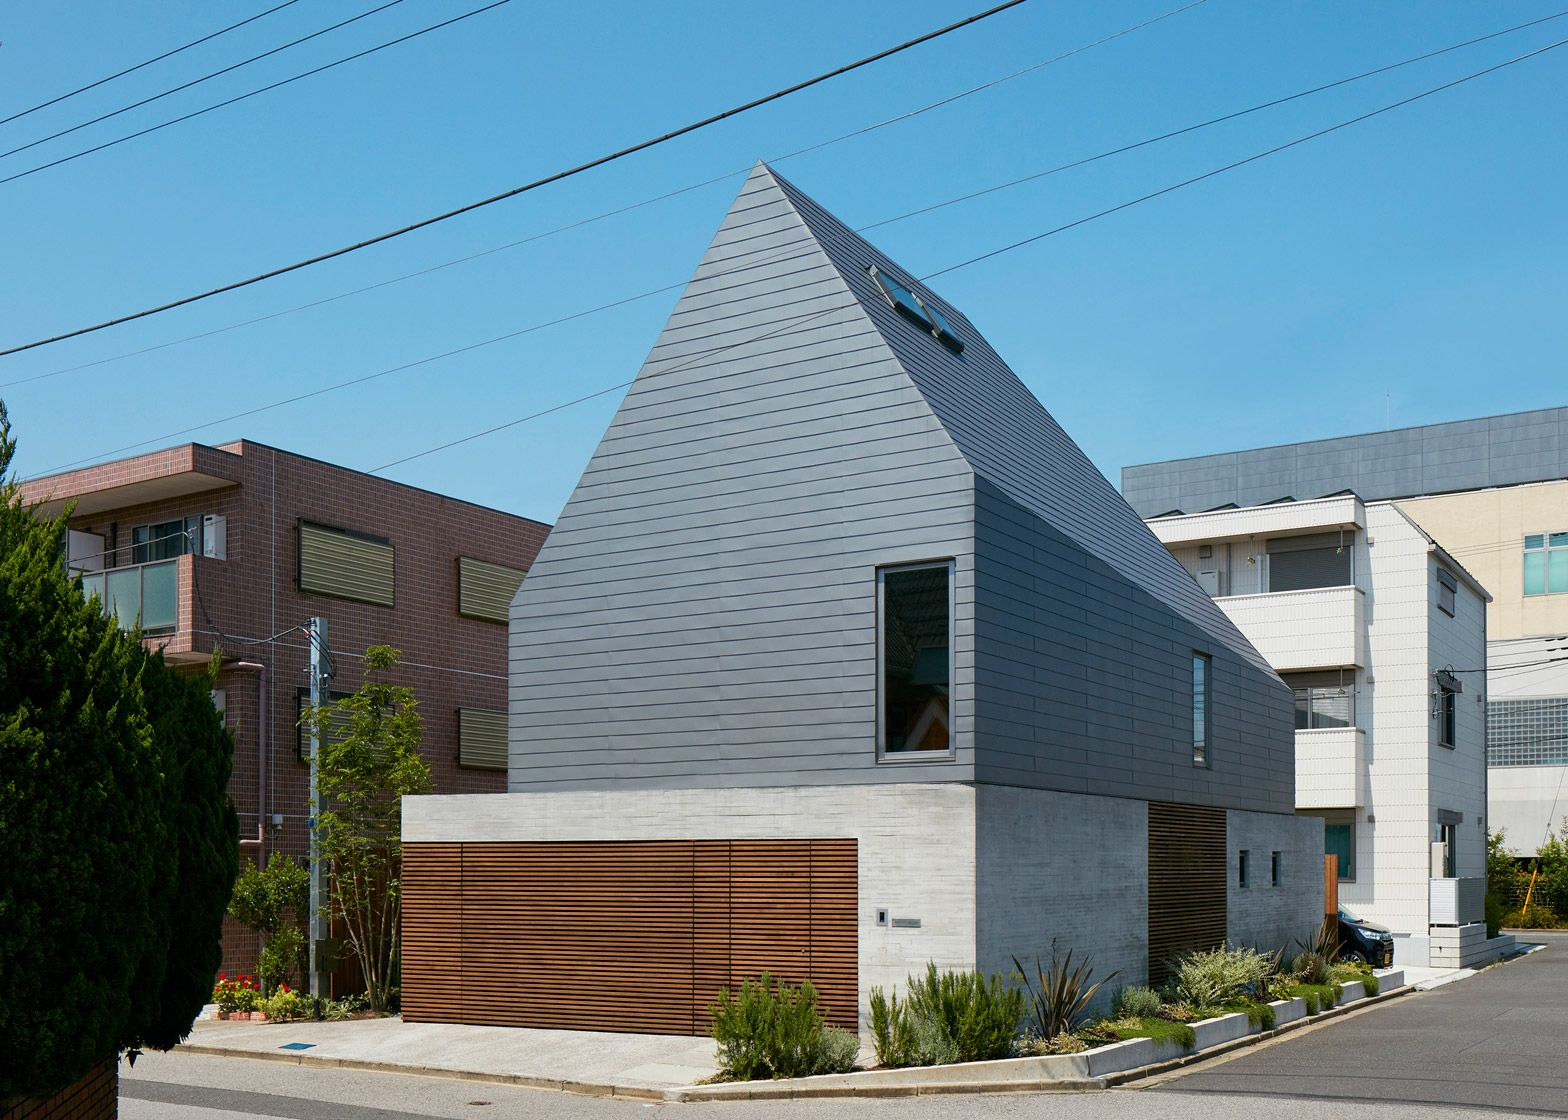 kentaro ishida adds stripy steel skin to asymmetric house in japan - Japanese Architecture Small Houses